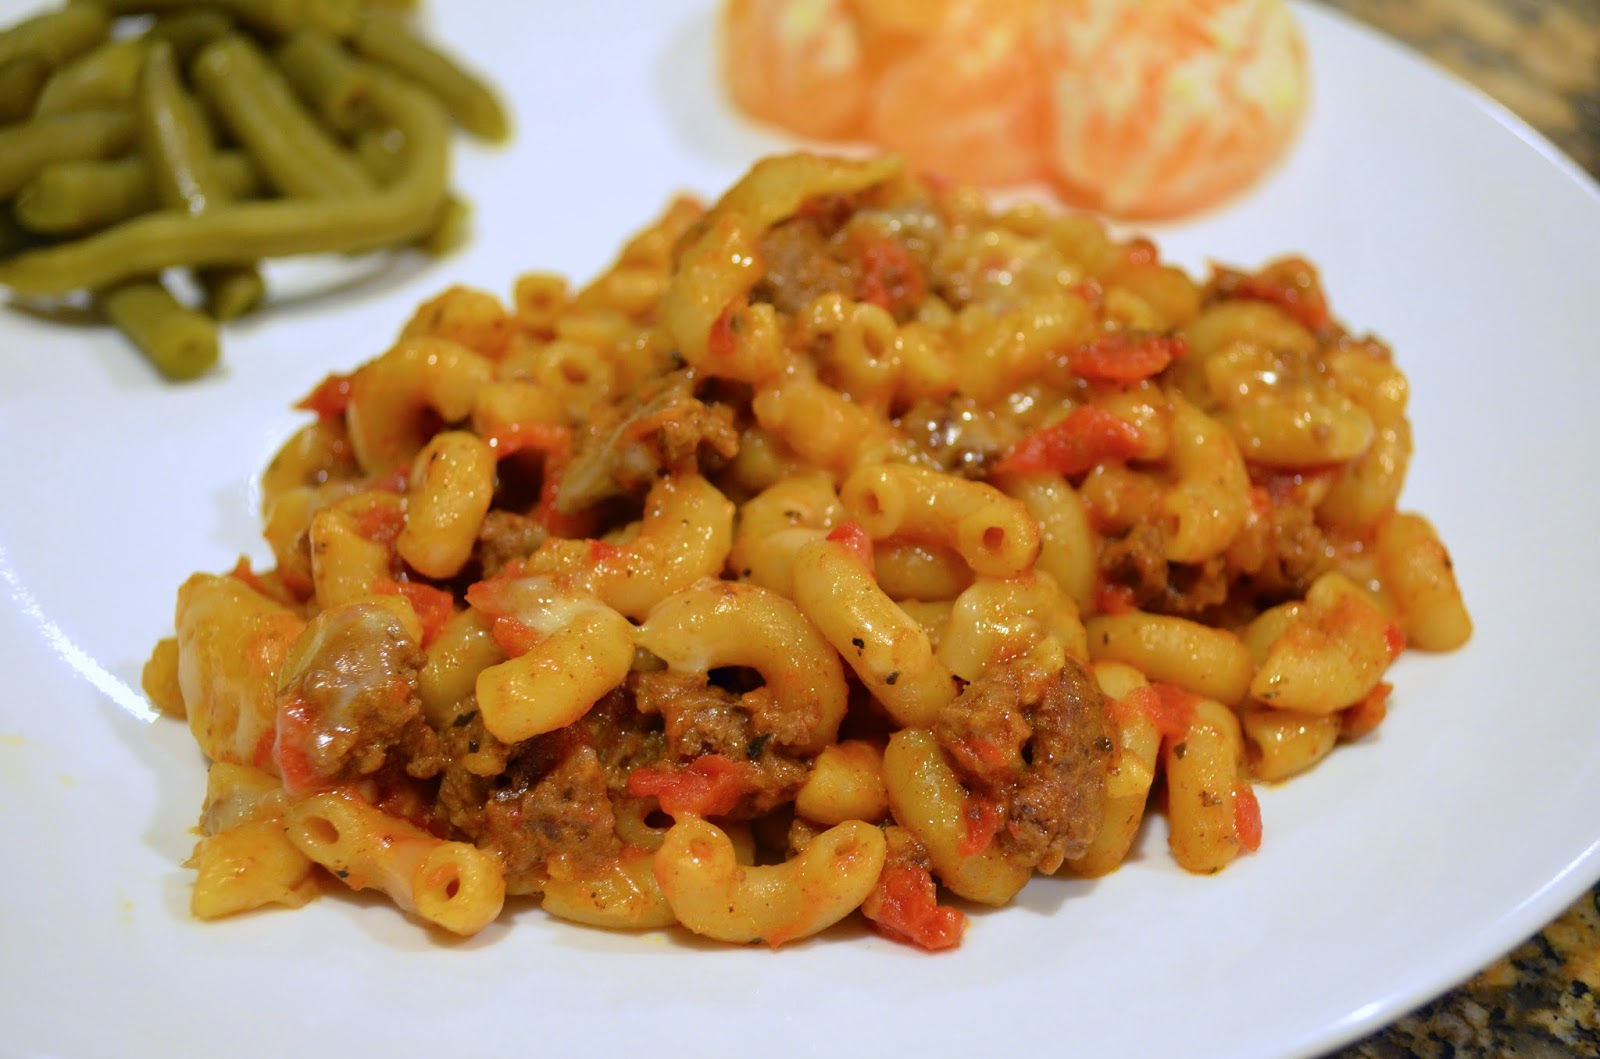 how to make 2 pounds of macaroni and cheese